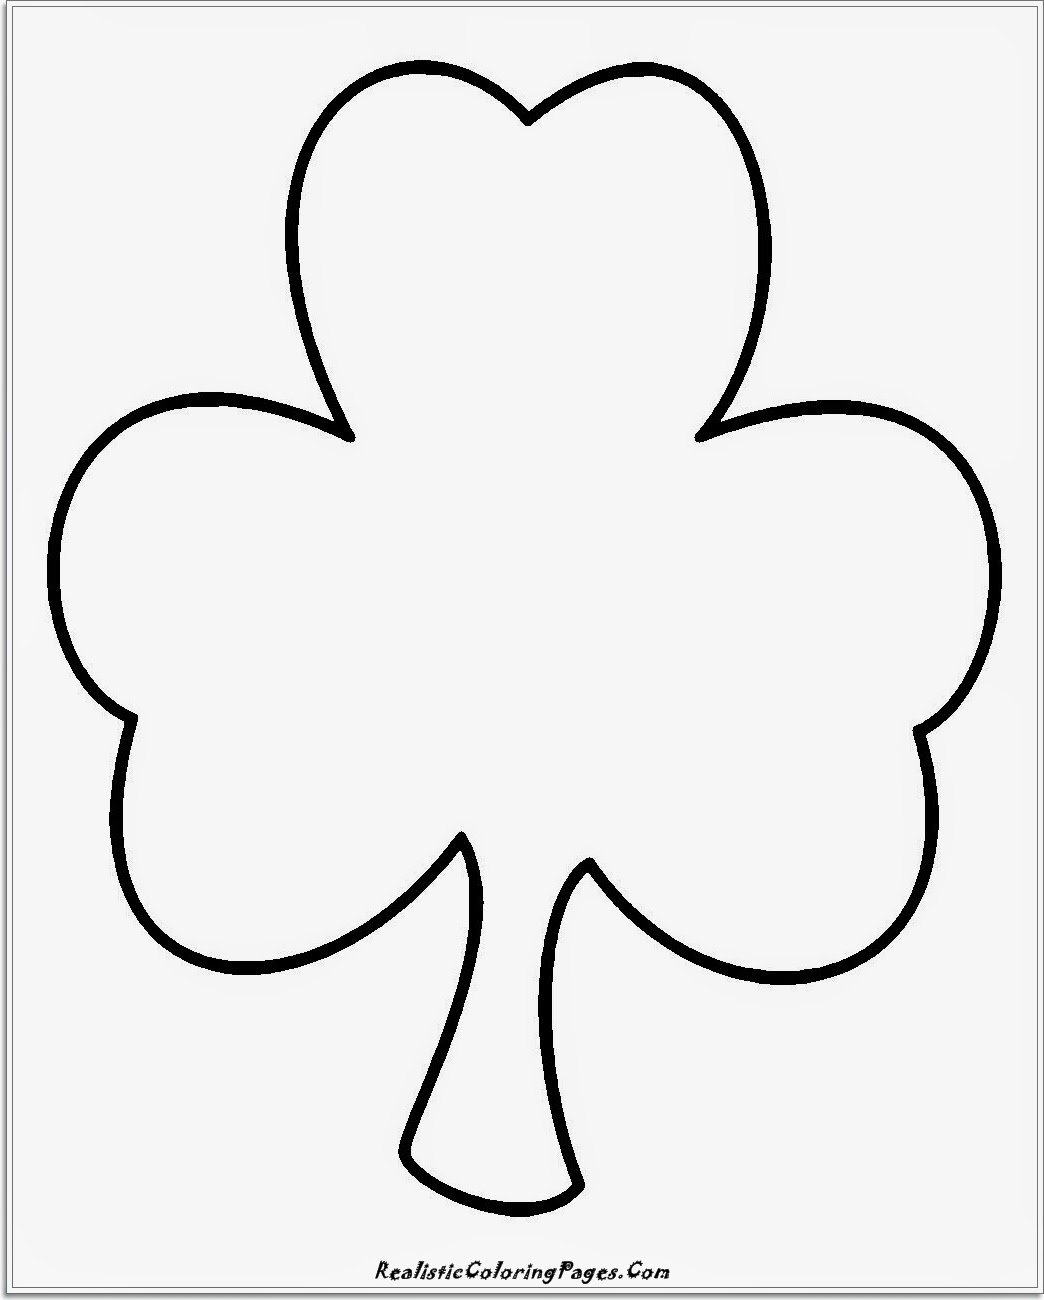 simple clover coloring pages